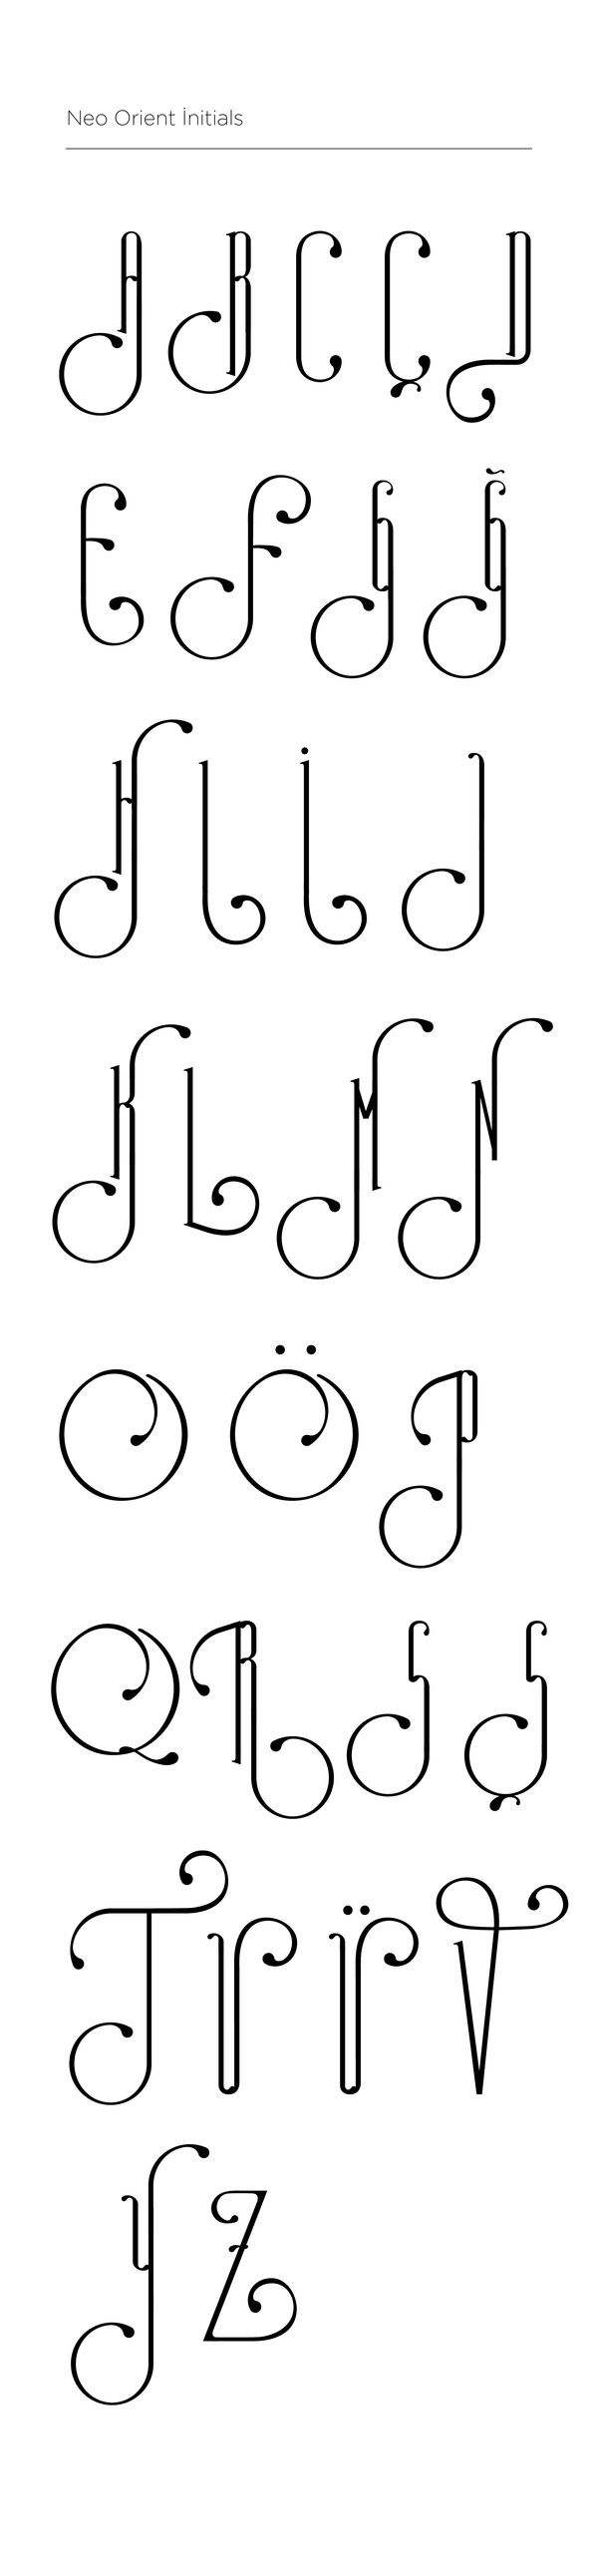 Can we make have iron coat hooks made in our letters: